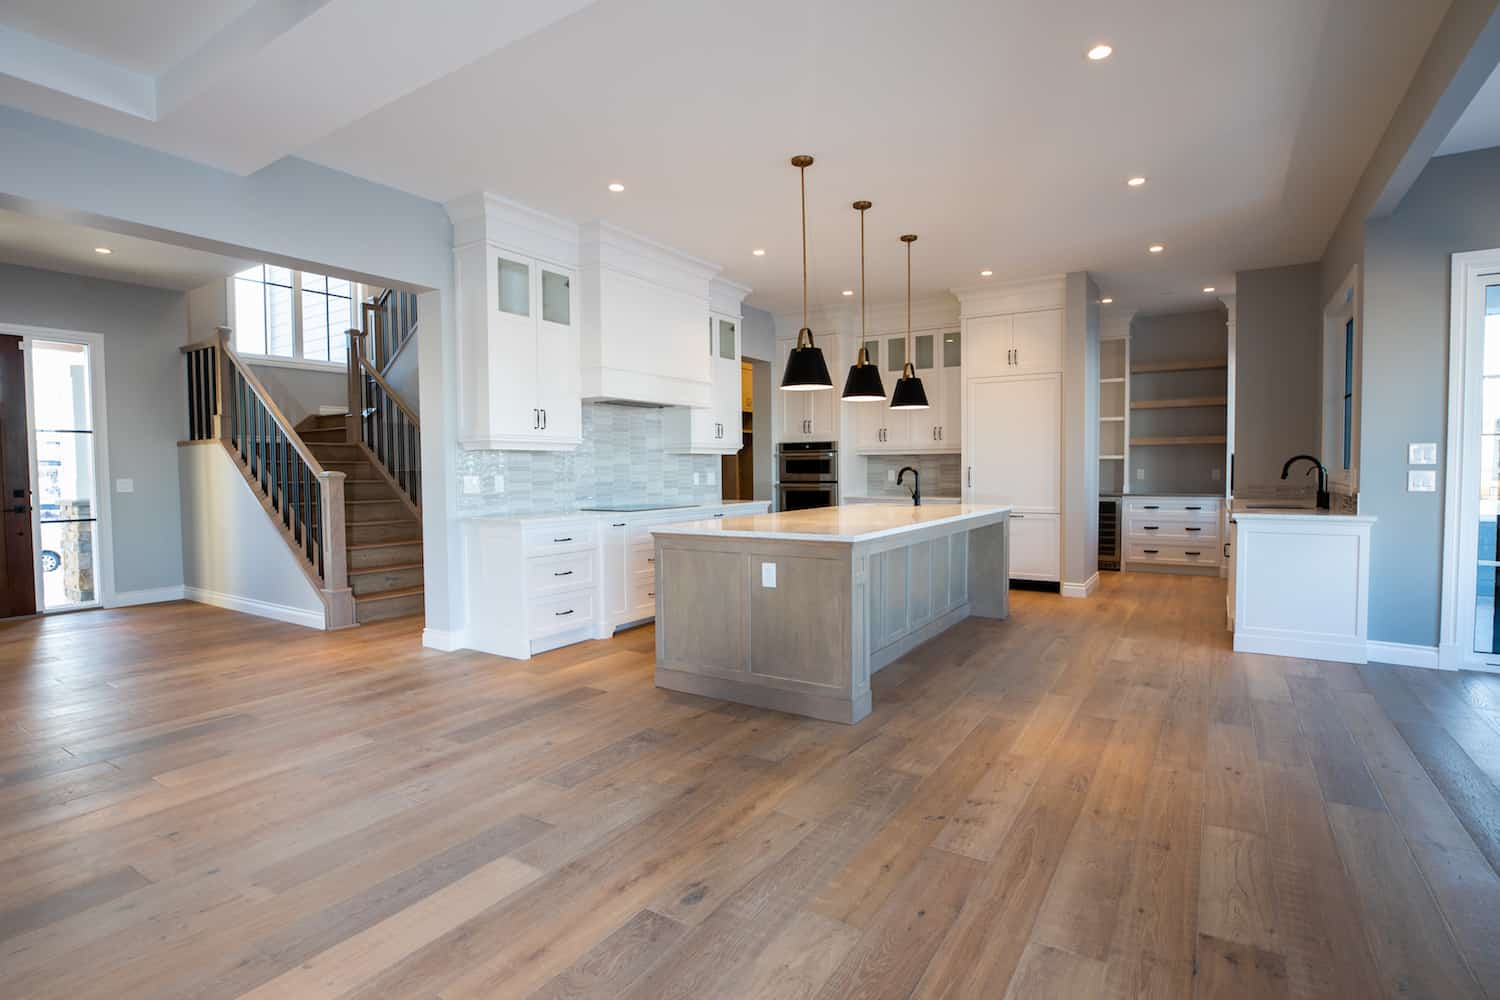 Kitchen and open dining area - custom residential design